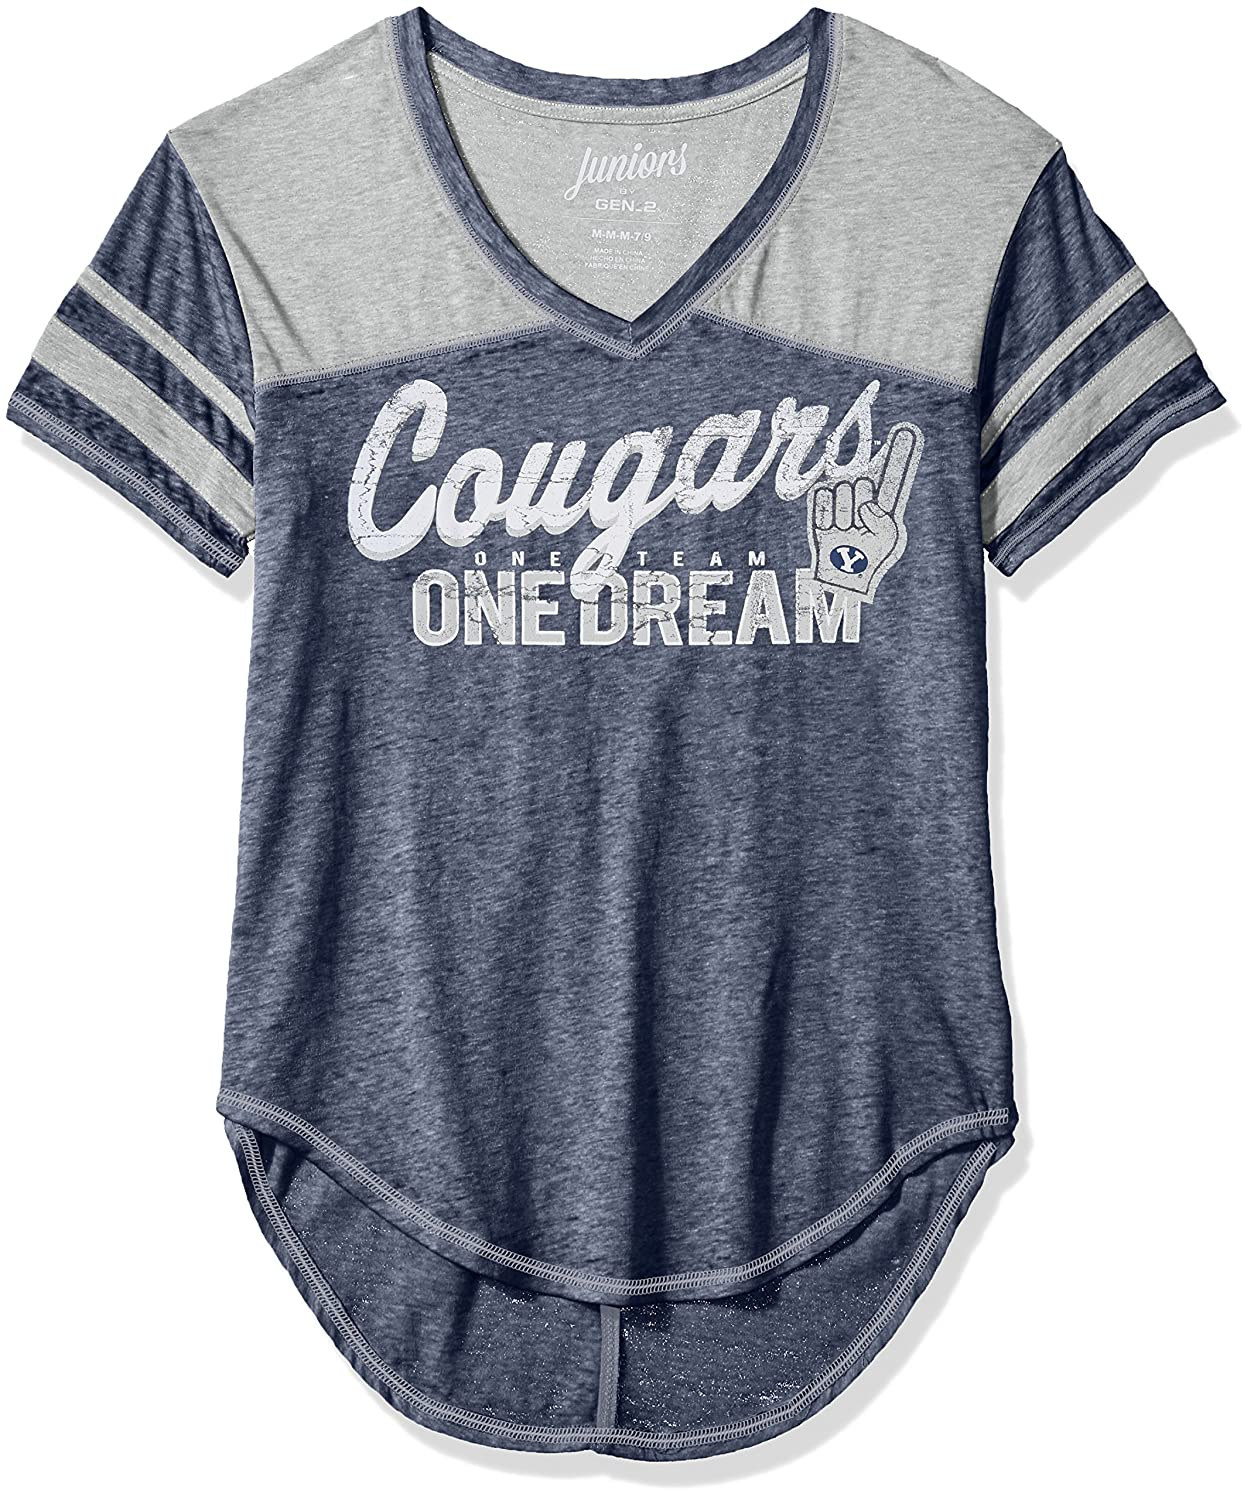 3-5 NCAA Byu Cougars Juniors Outerstuff Vintage Short Sleeve Football Tee Team Color Small